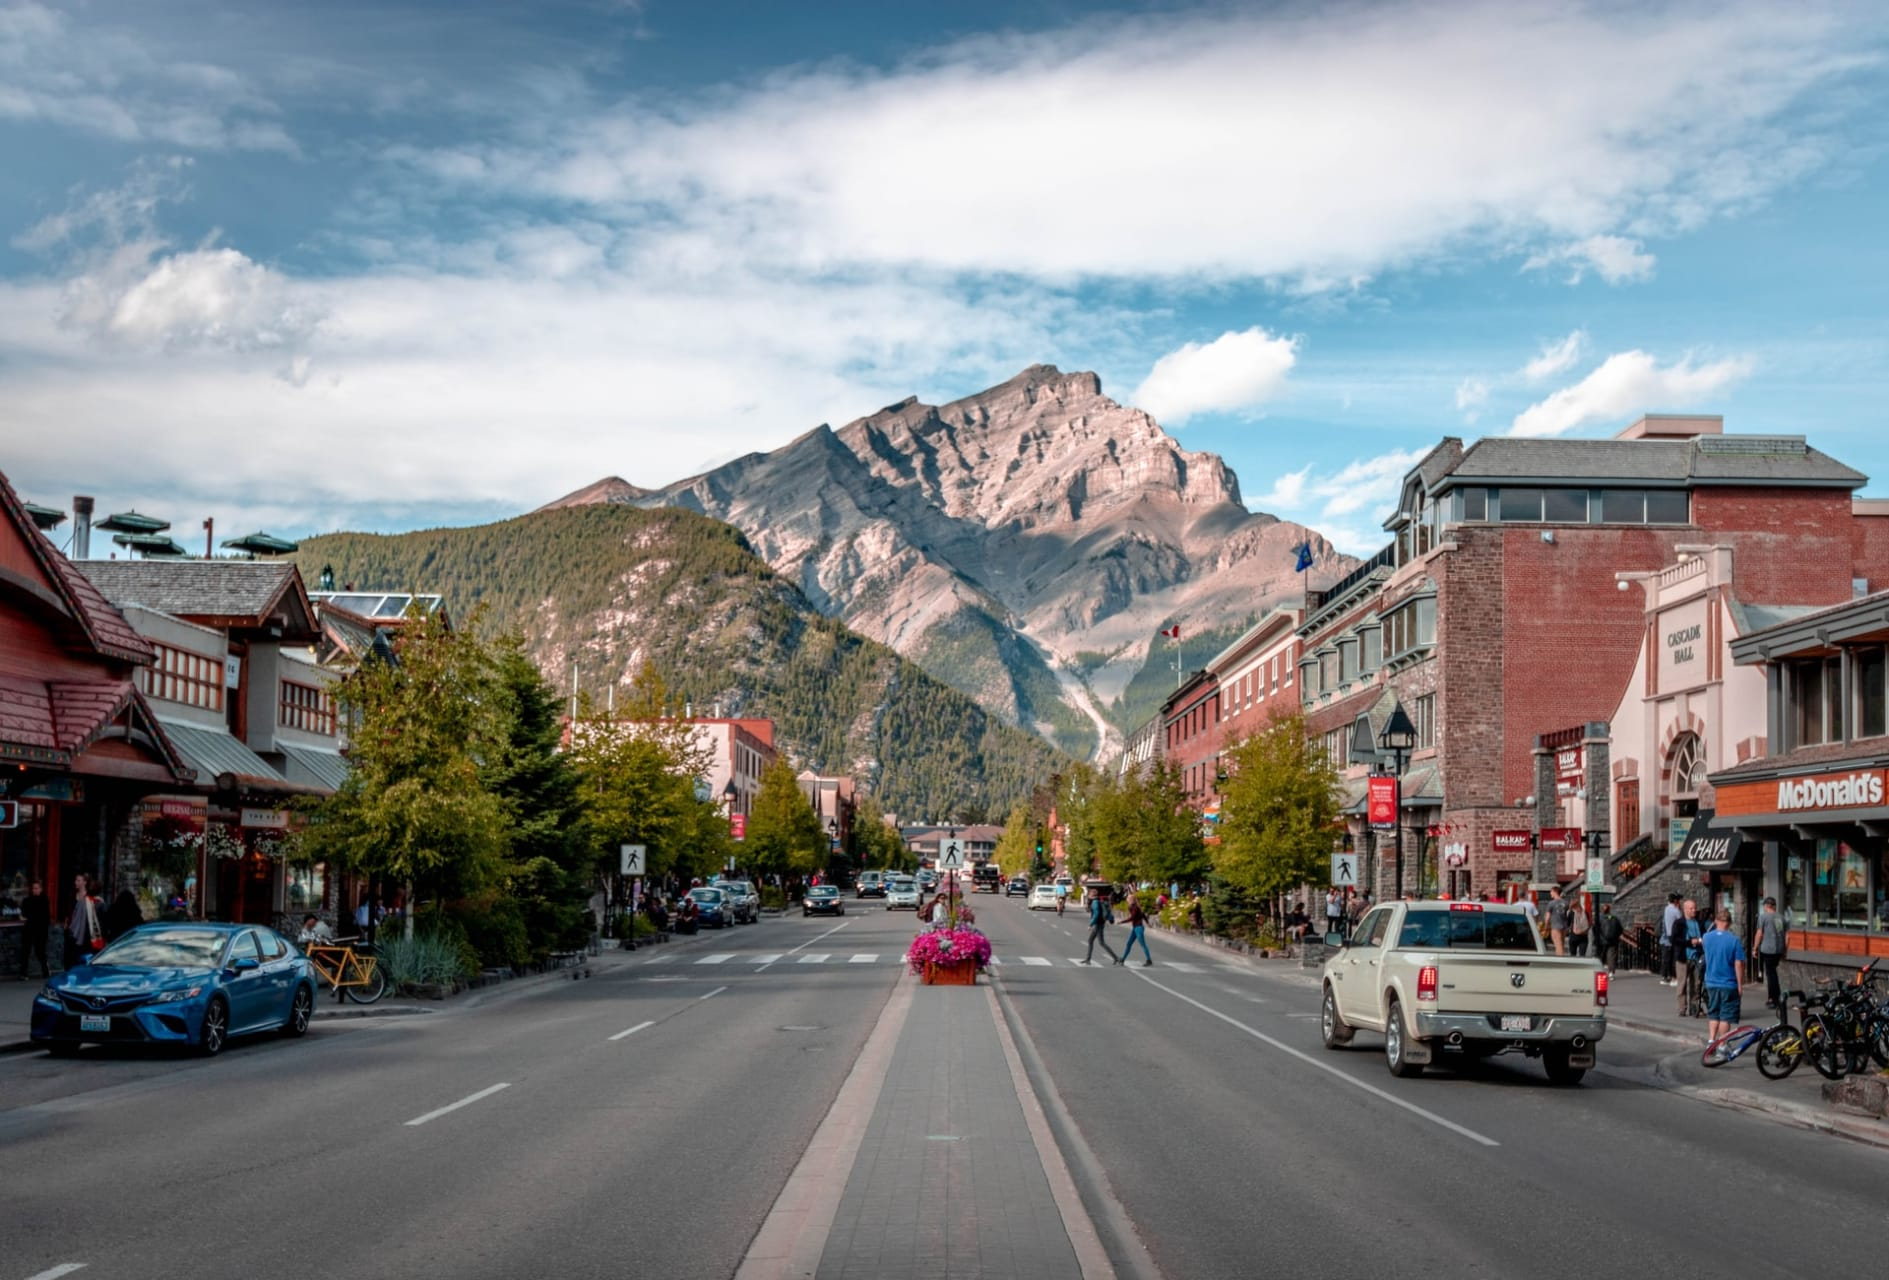 Banff - Best indoor attraction in Banff - The Whyte Museum of Canadian Rockies